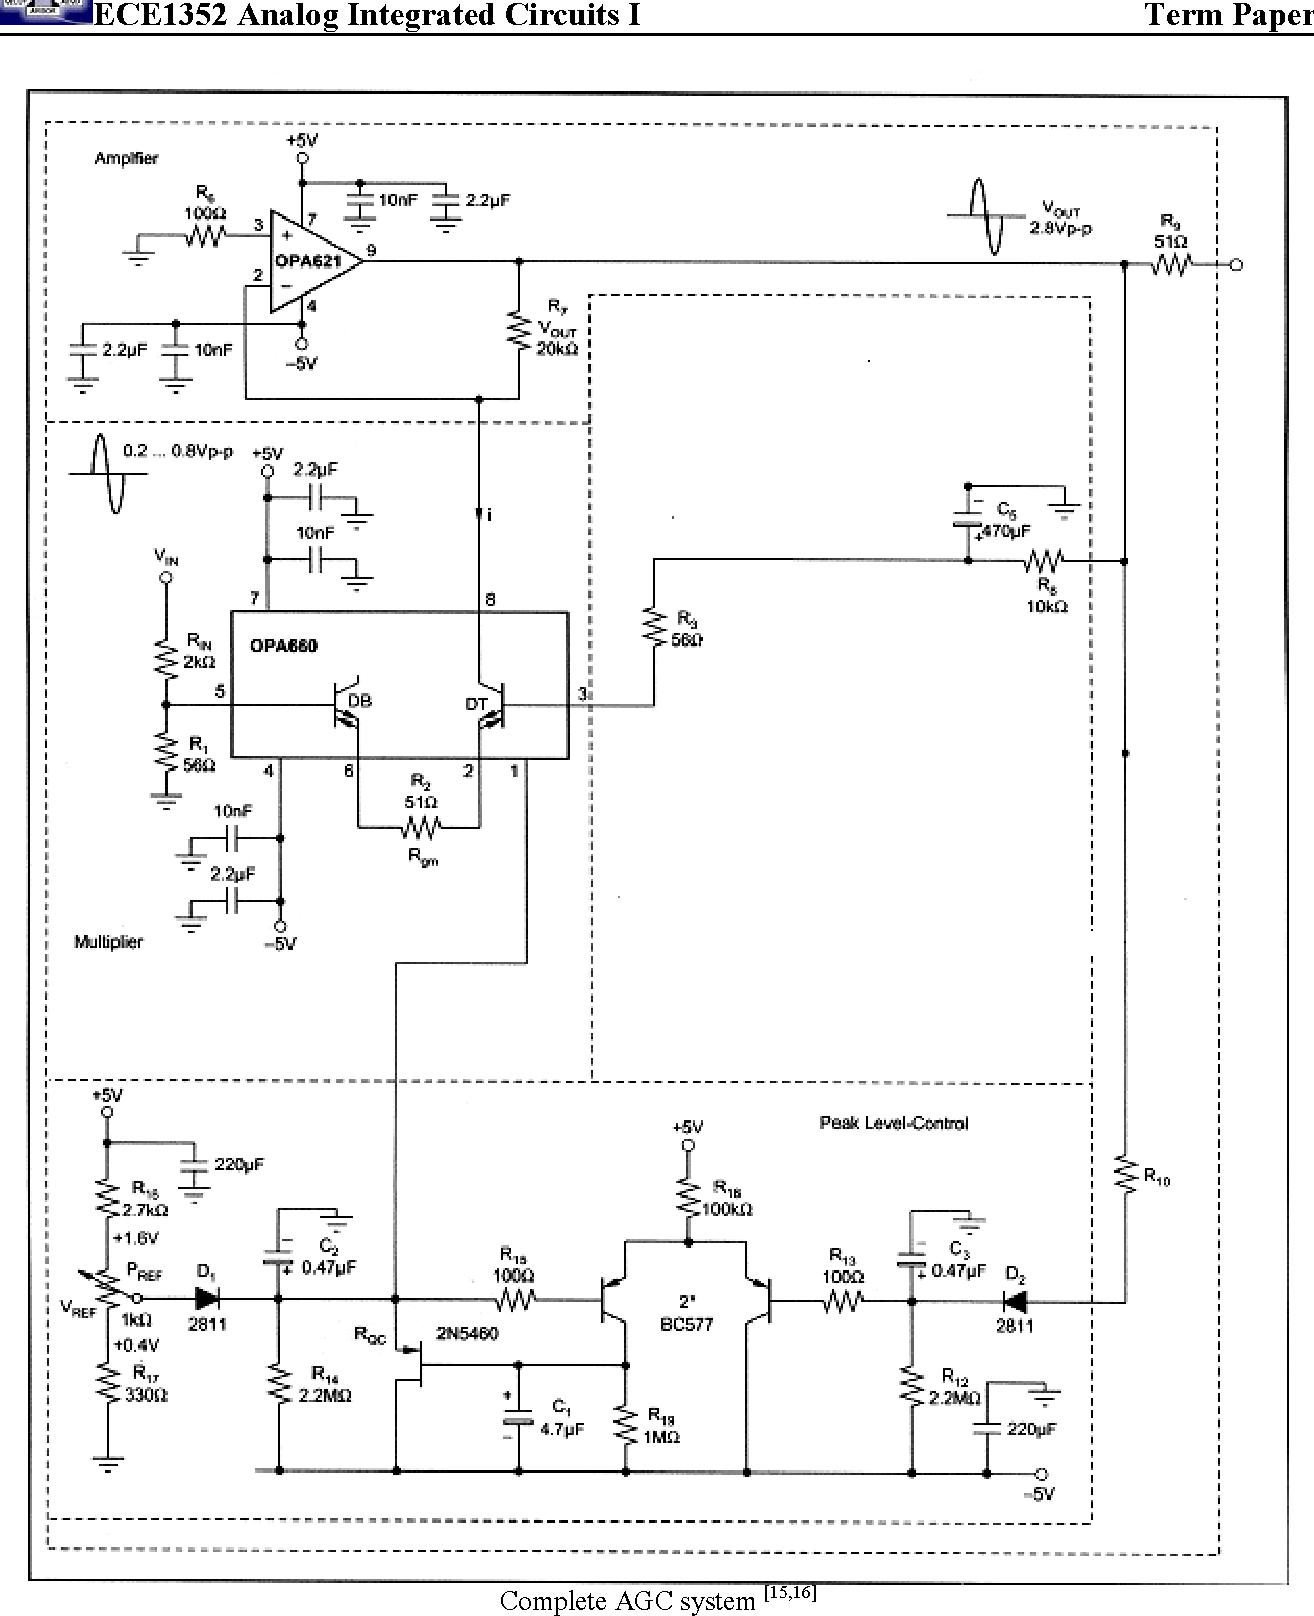 Figure 20 from Automatic Gain Control (AGC) circuits Theory